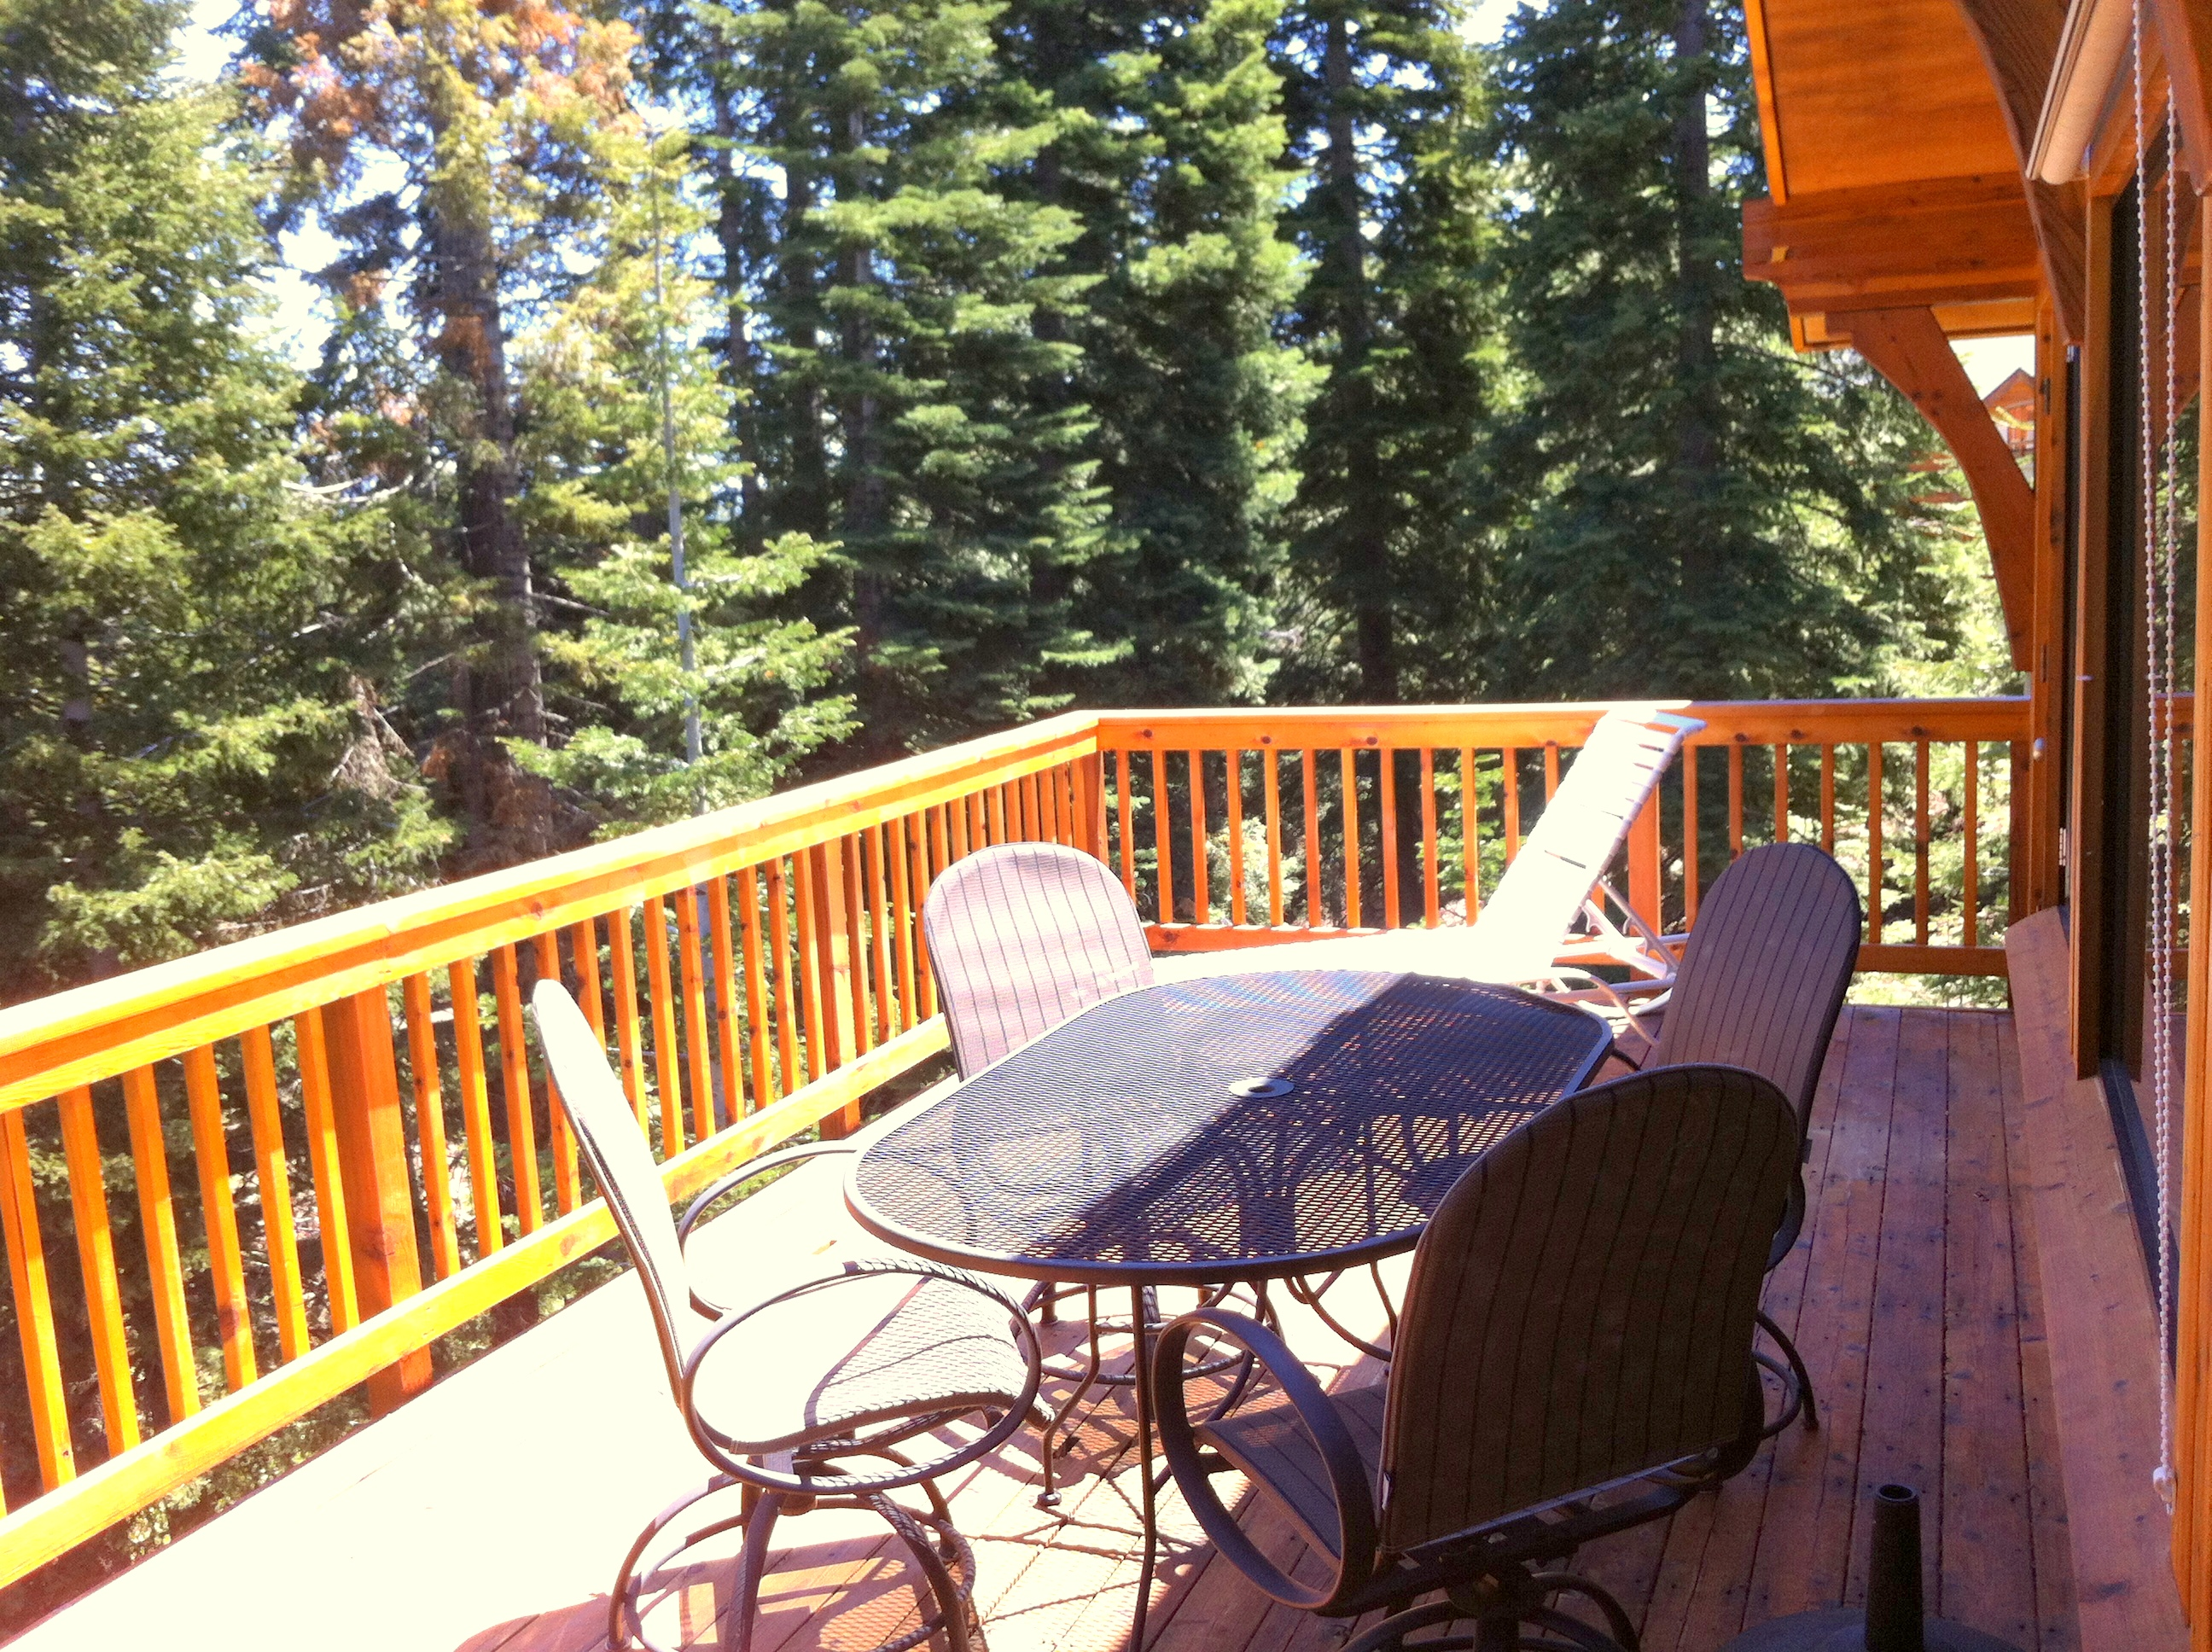 cottages booking only ca adults com us truckee tahoe city hotel inn cottage